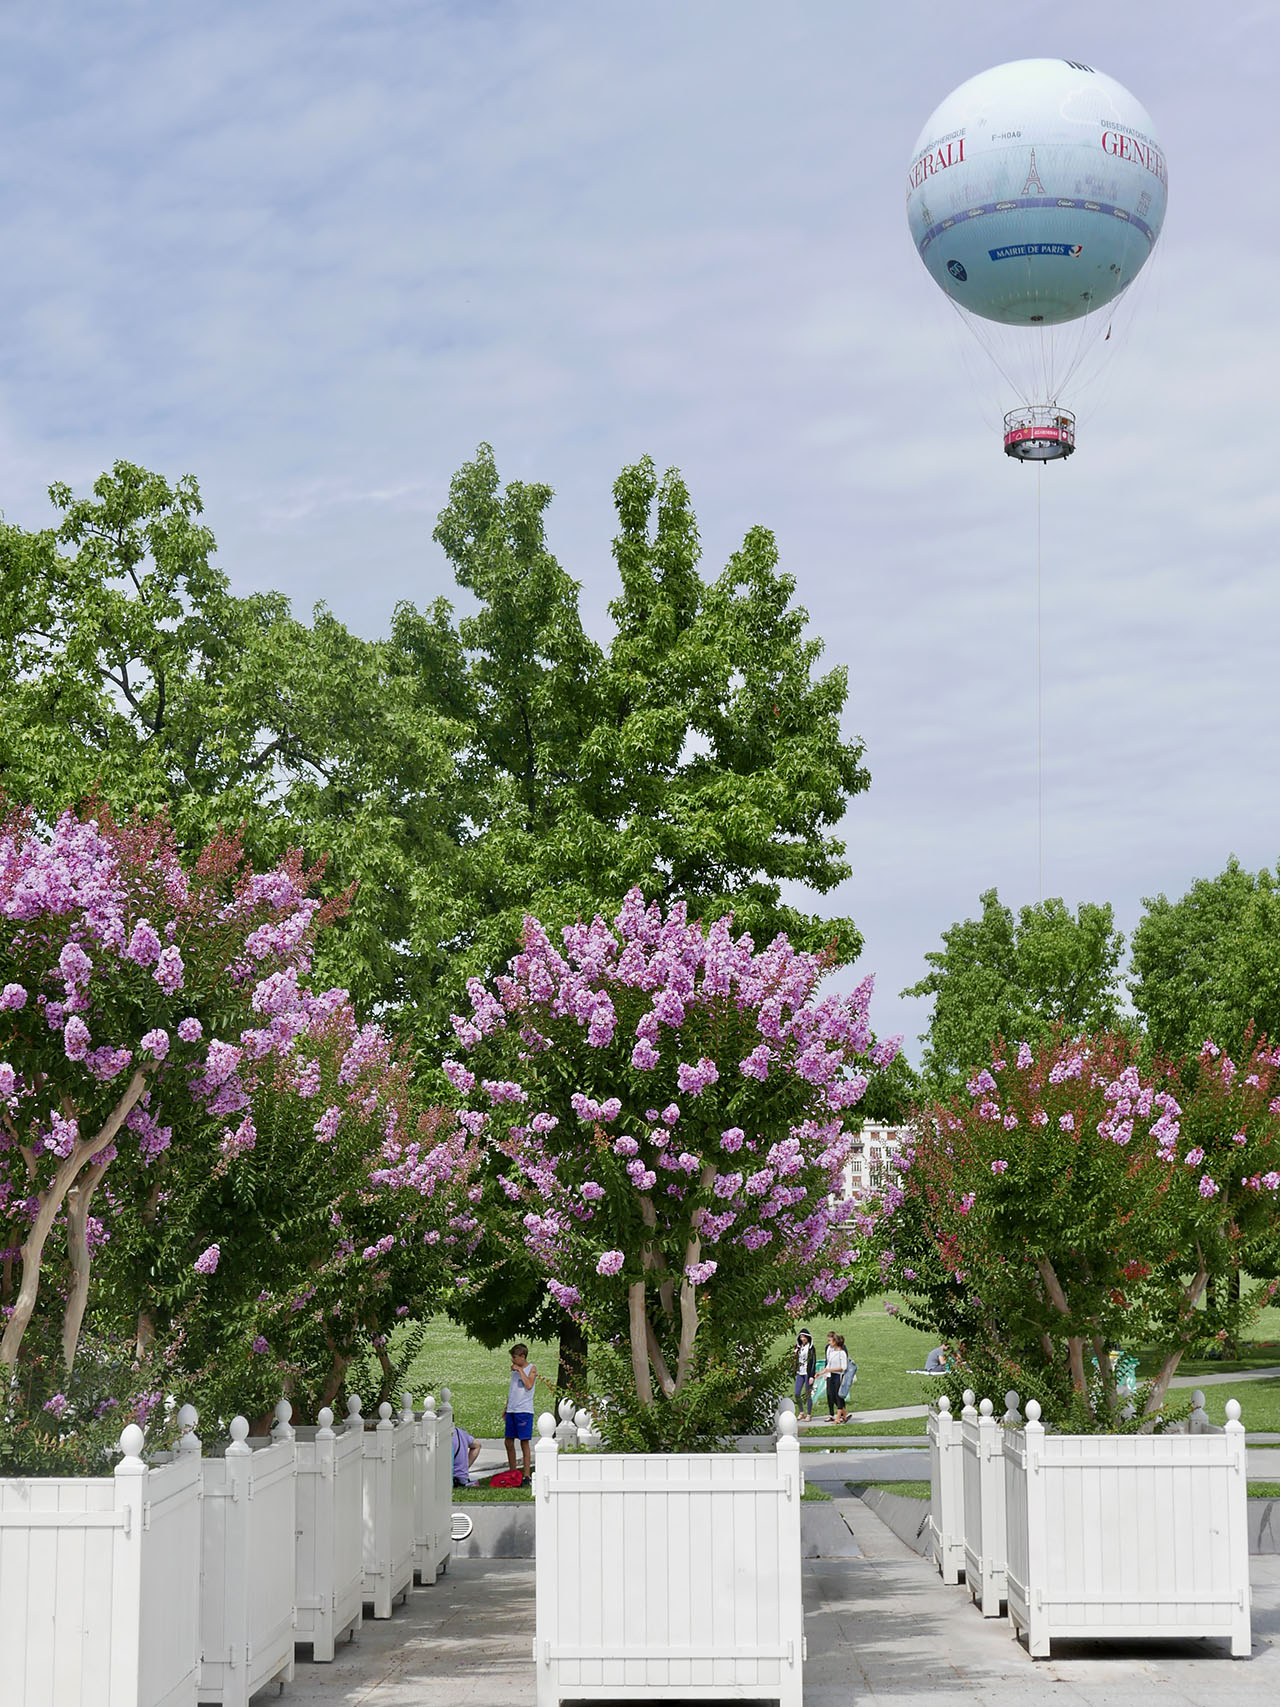 Cara Sharratt Travel - Ballon de Paris at Parc André Citroën - Summer